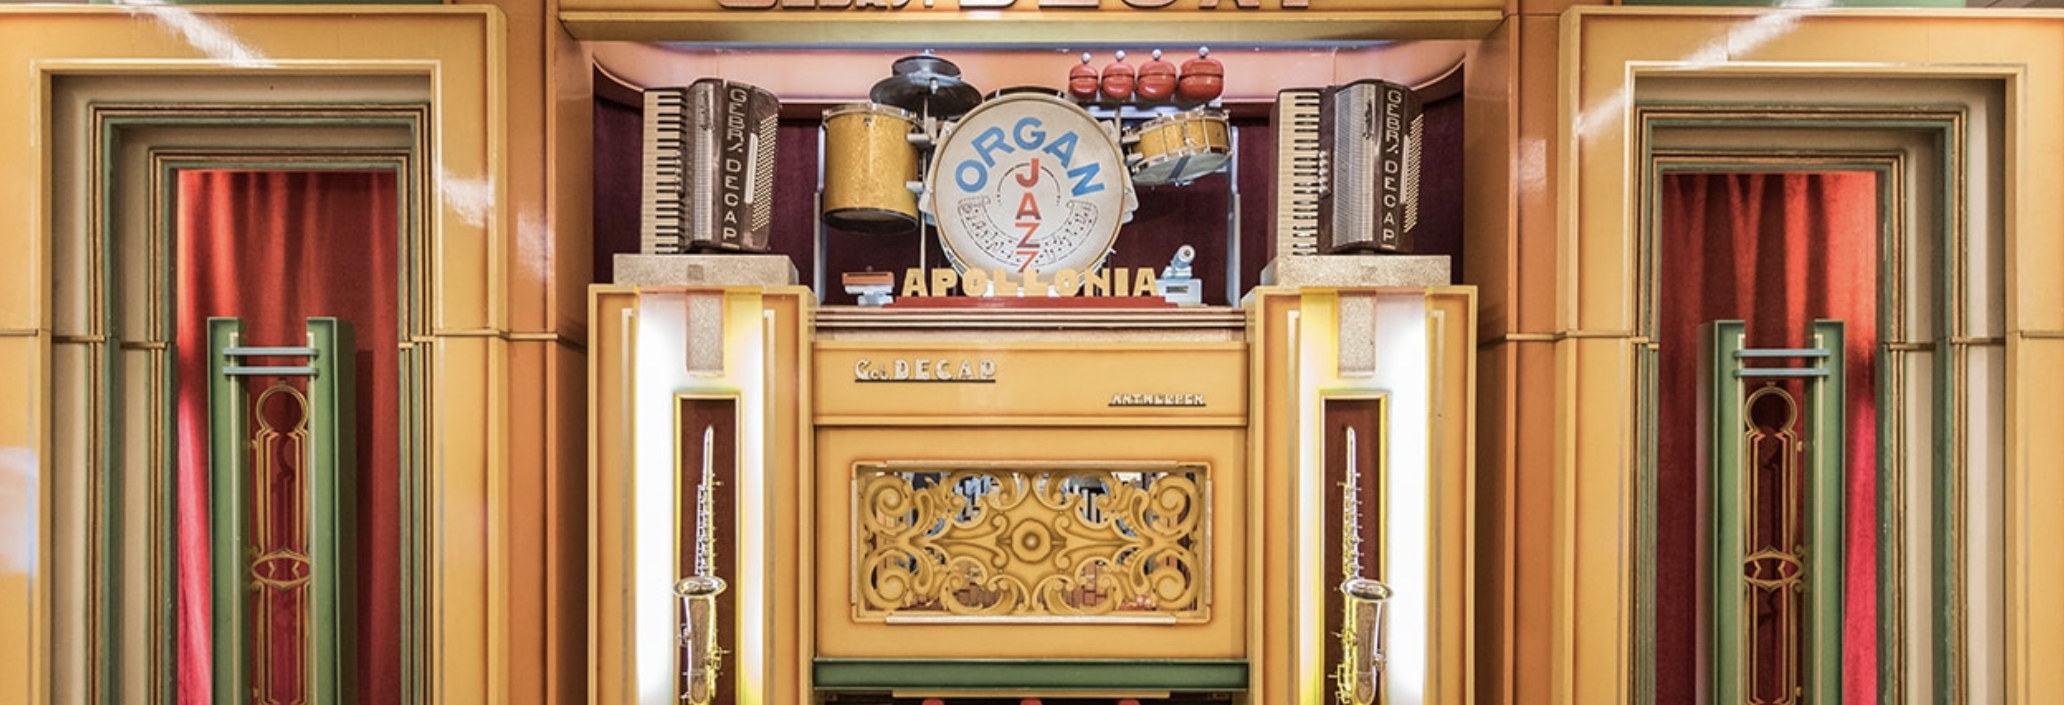 A jazz organ at the Musical Instrument Museum, just one of the highlights in this collection of global instruments. Photo courtesy Musical Instrument Museum.